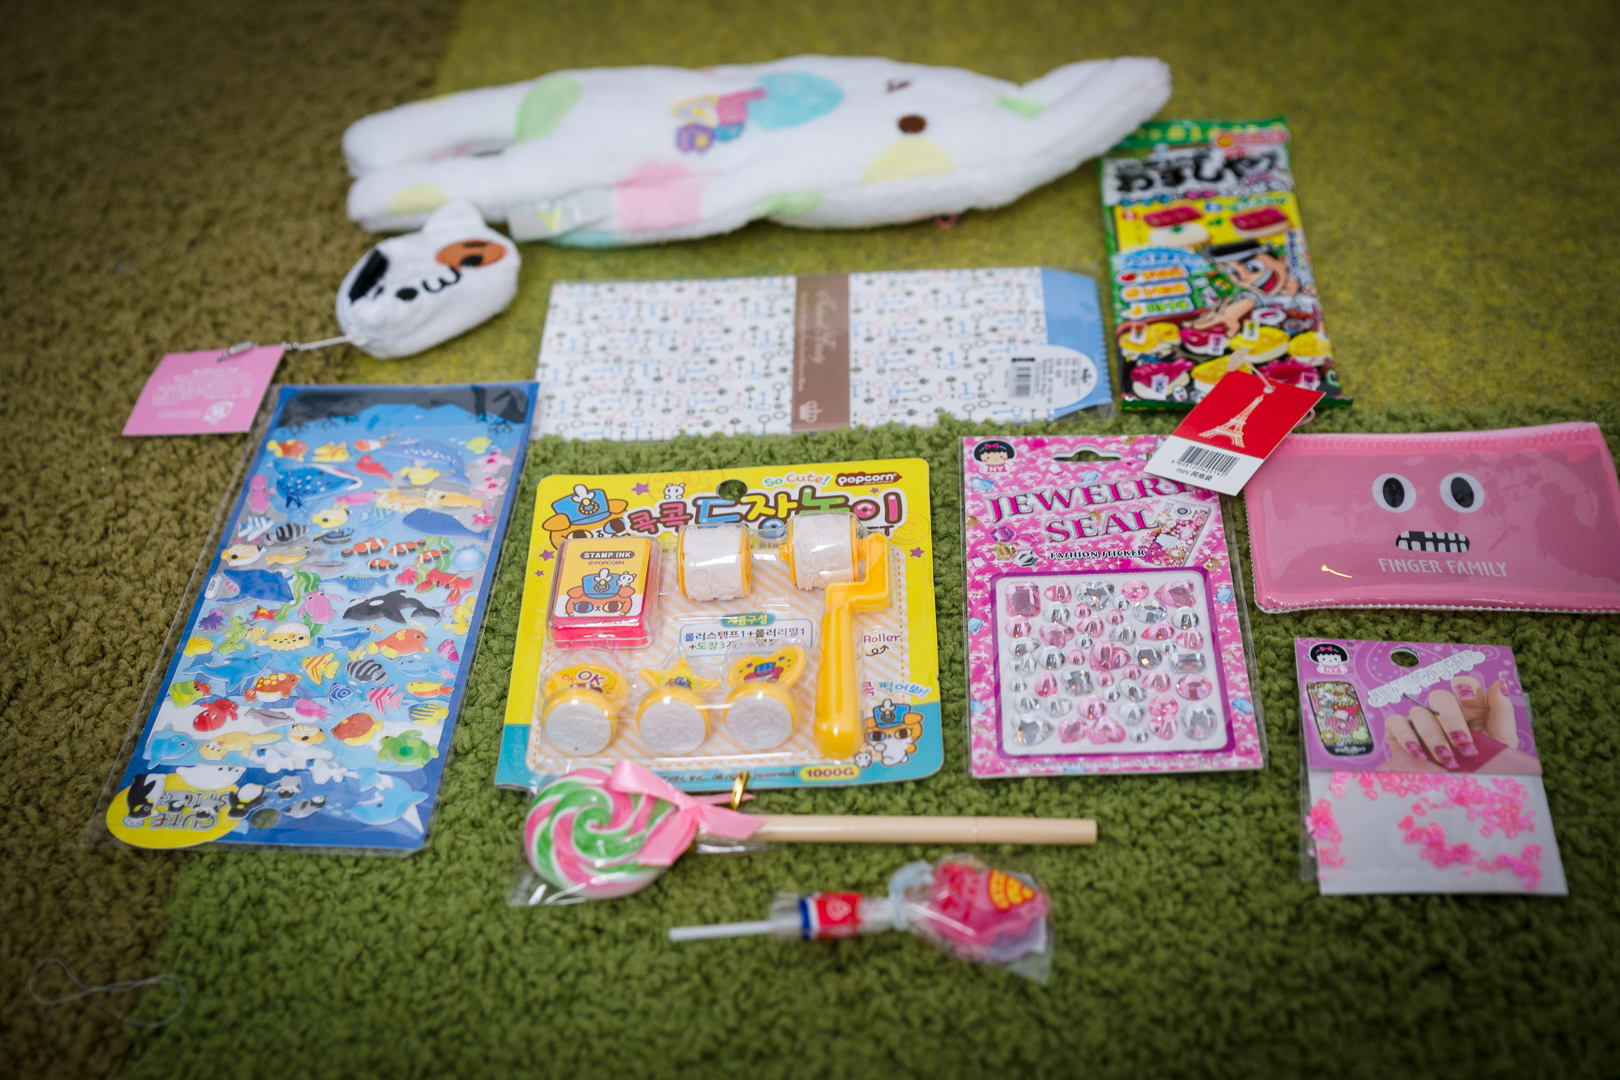 Here are all the items laid out for you